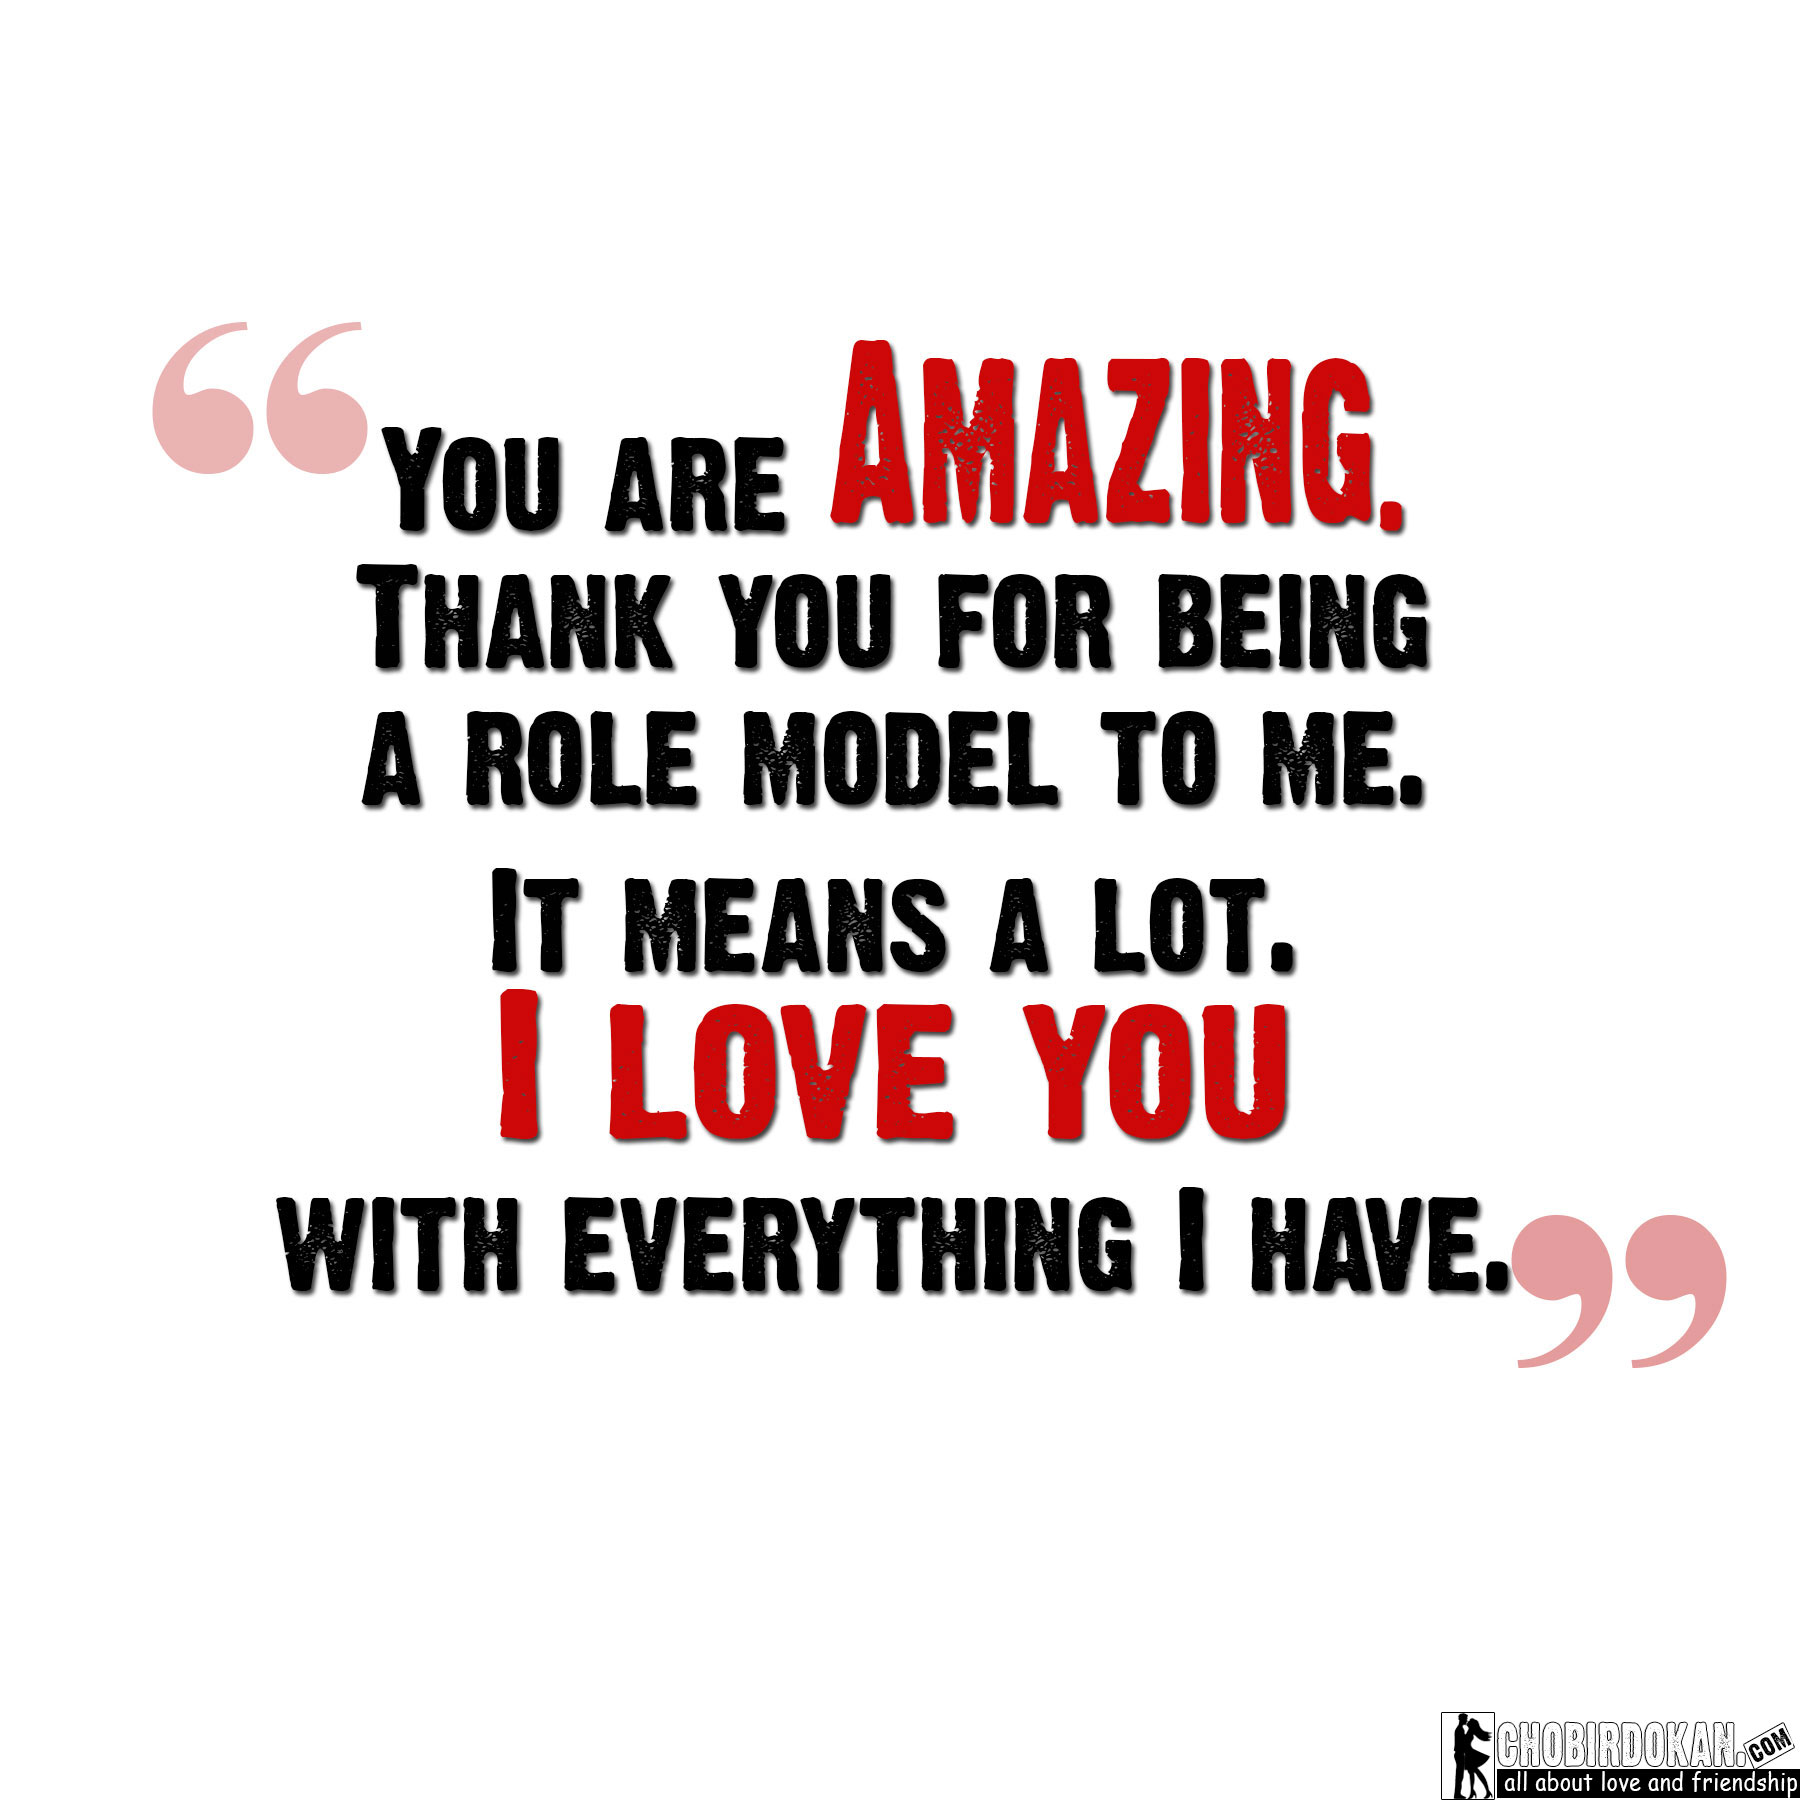 You Re Amazing Thank You: You Are Amazing Quotes For Him And Her With Images -Chobir